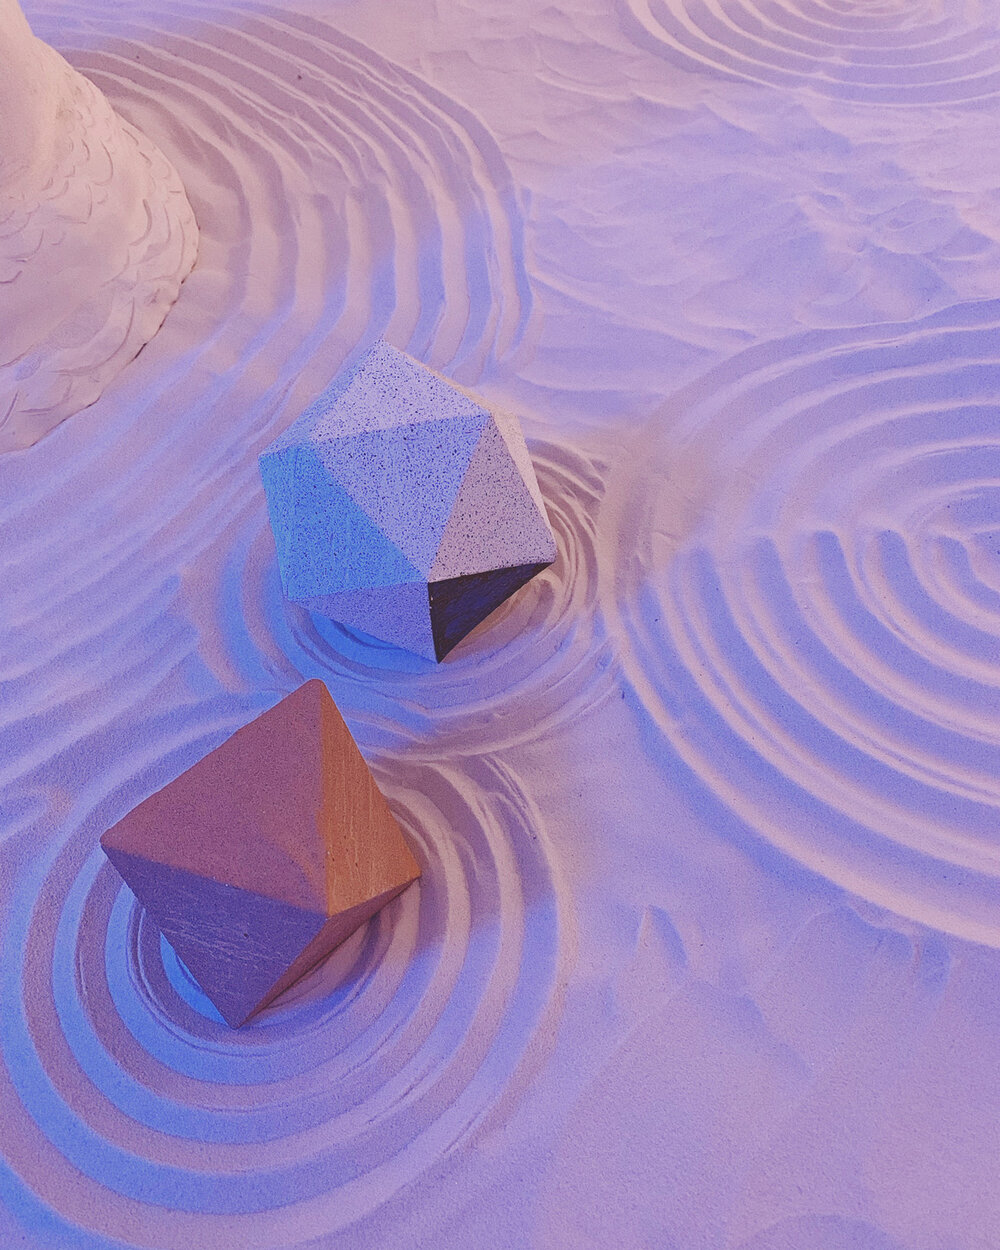 tetrahedrons in combed sand